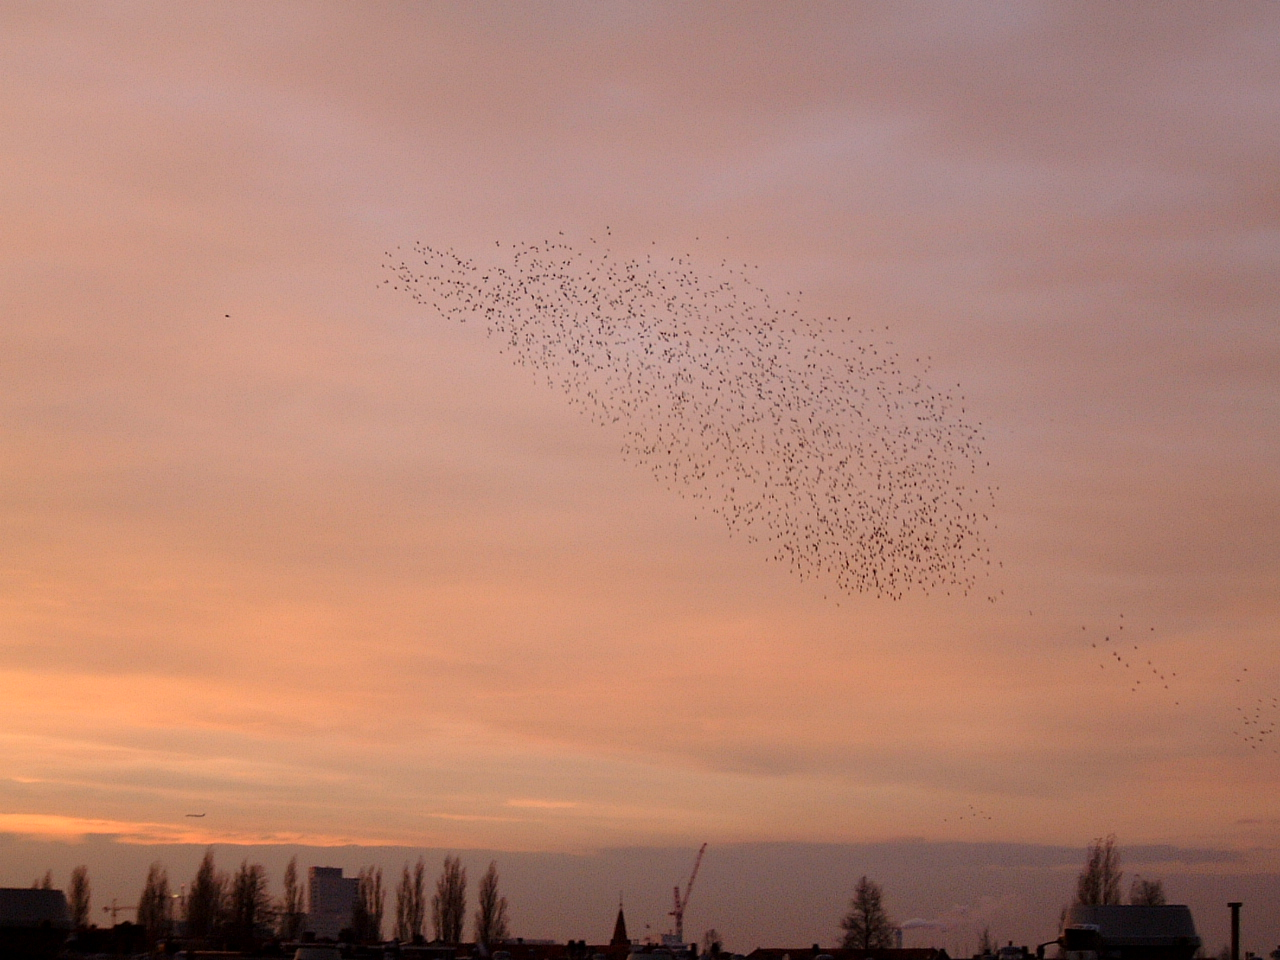 flock of birds migrating evening sky orange